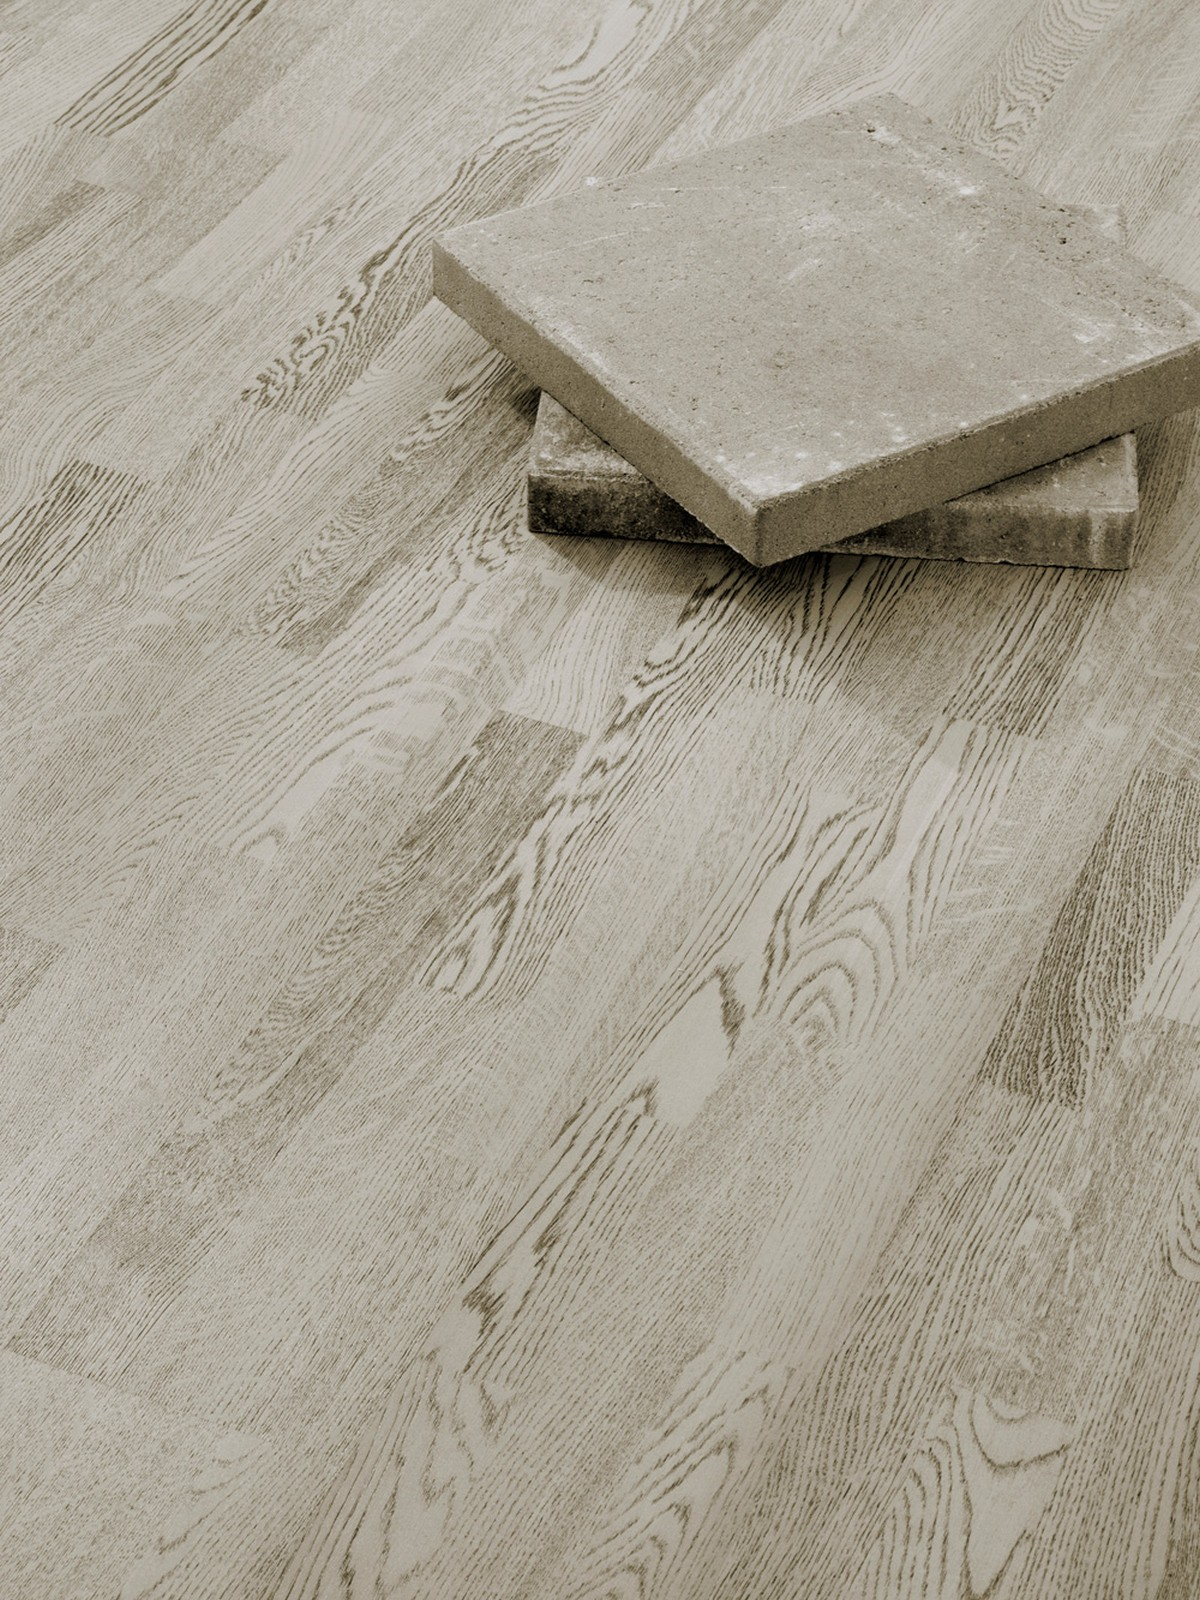 Parchet triplustratificat Stejar Concrete Grey 3strip